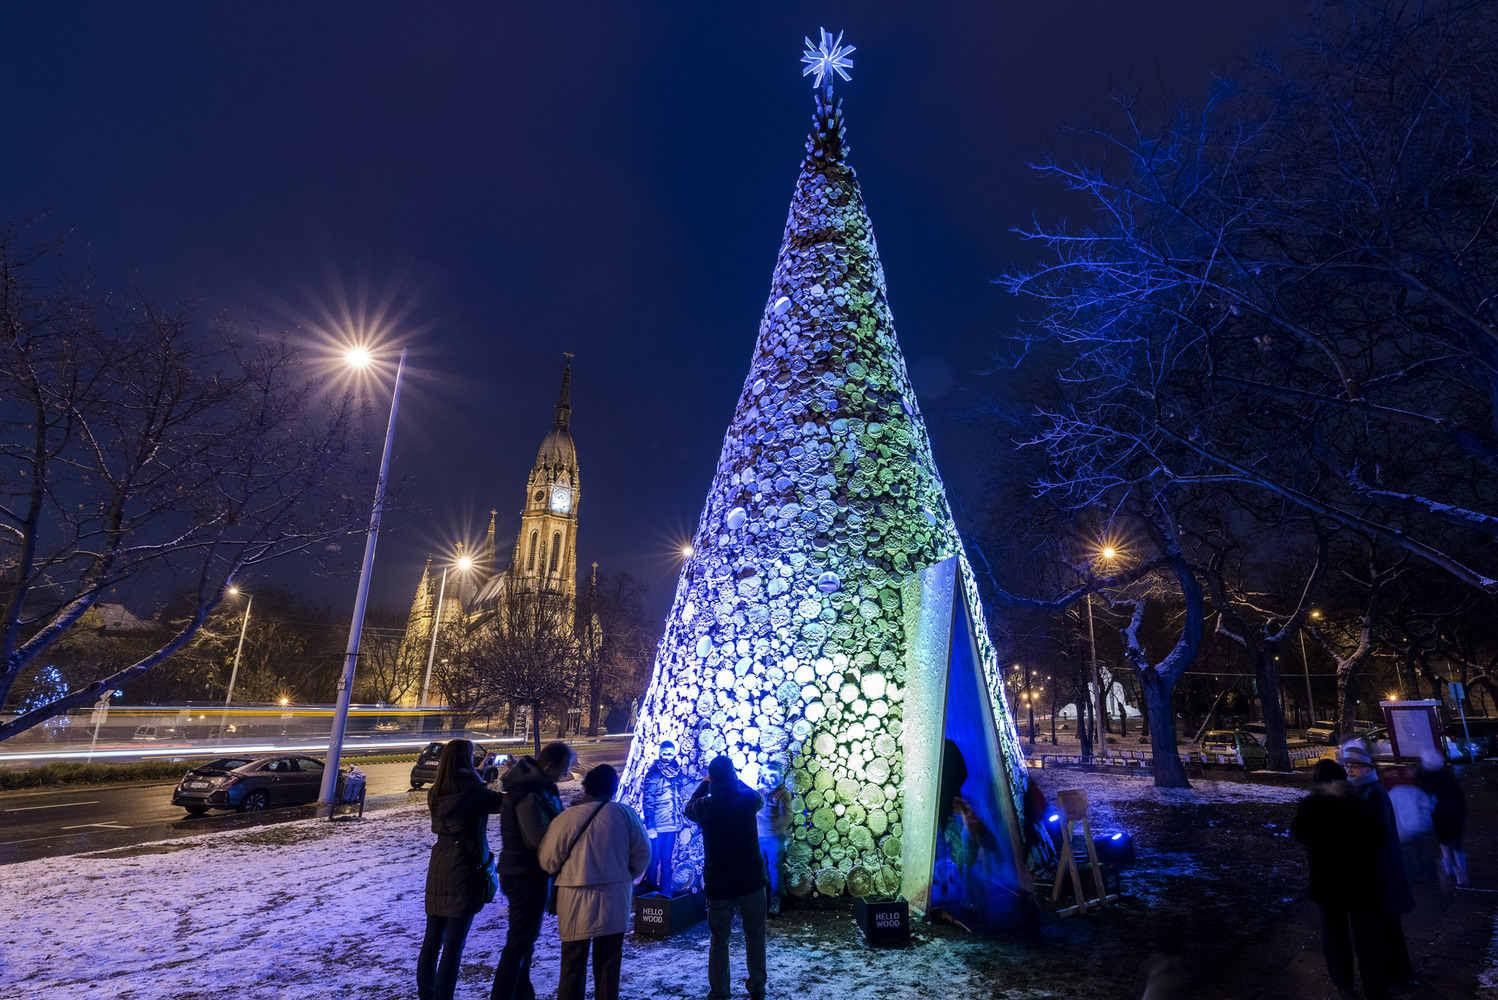 Hello Wood Builds 5 Wooden Christmas Trees in Cities Throughout Europe,Kobánya. Image © Máté Lakos